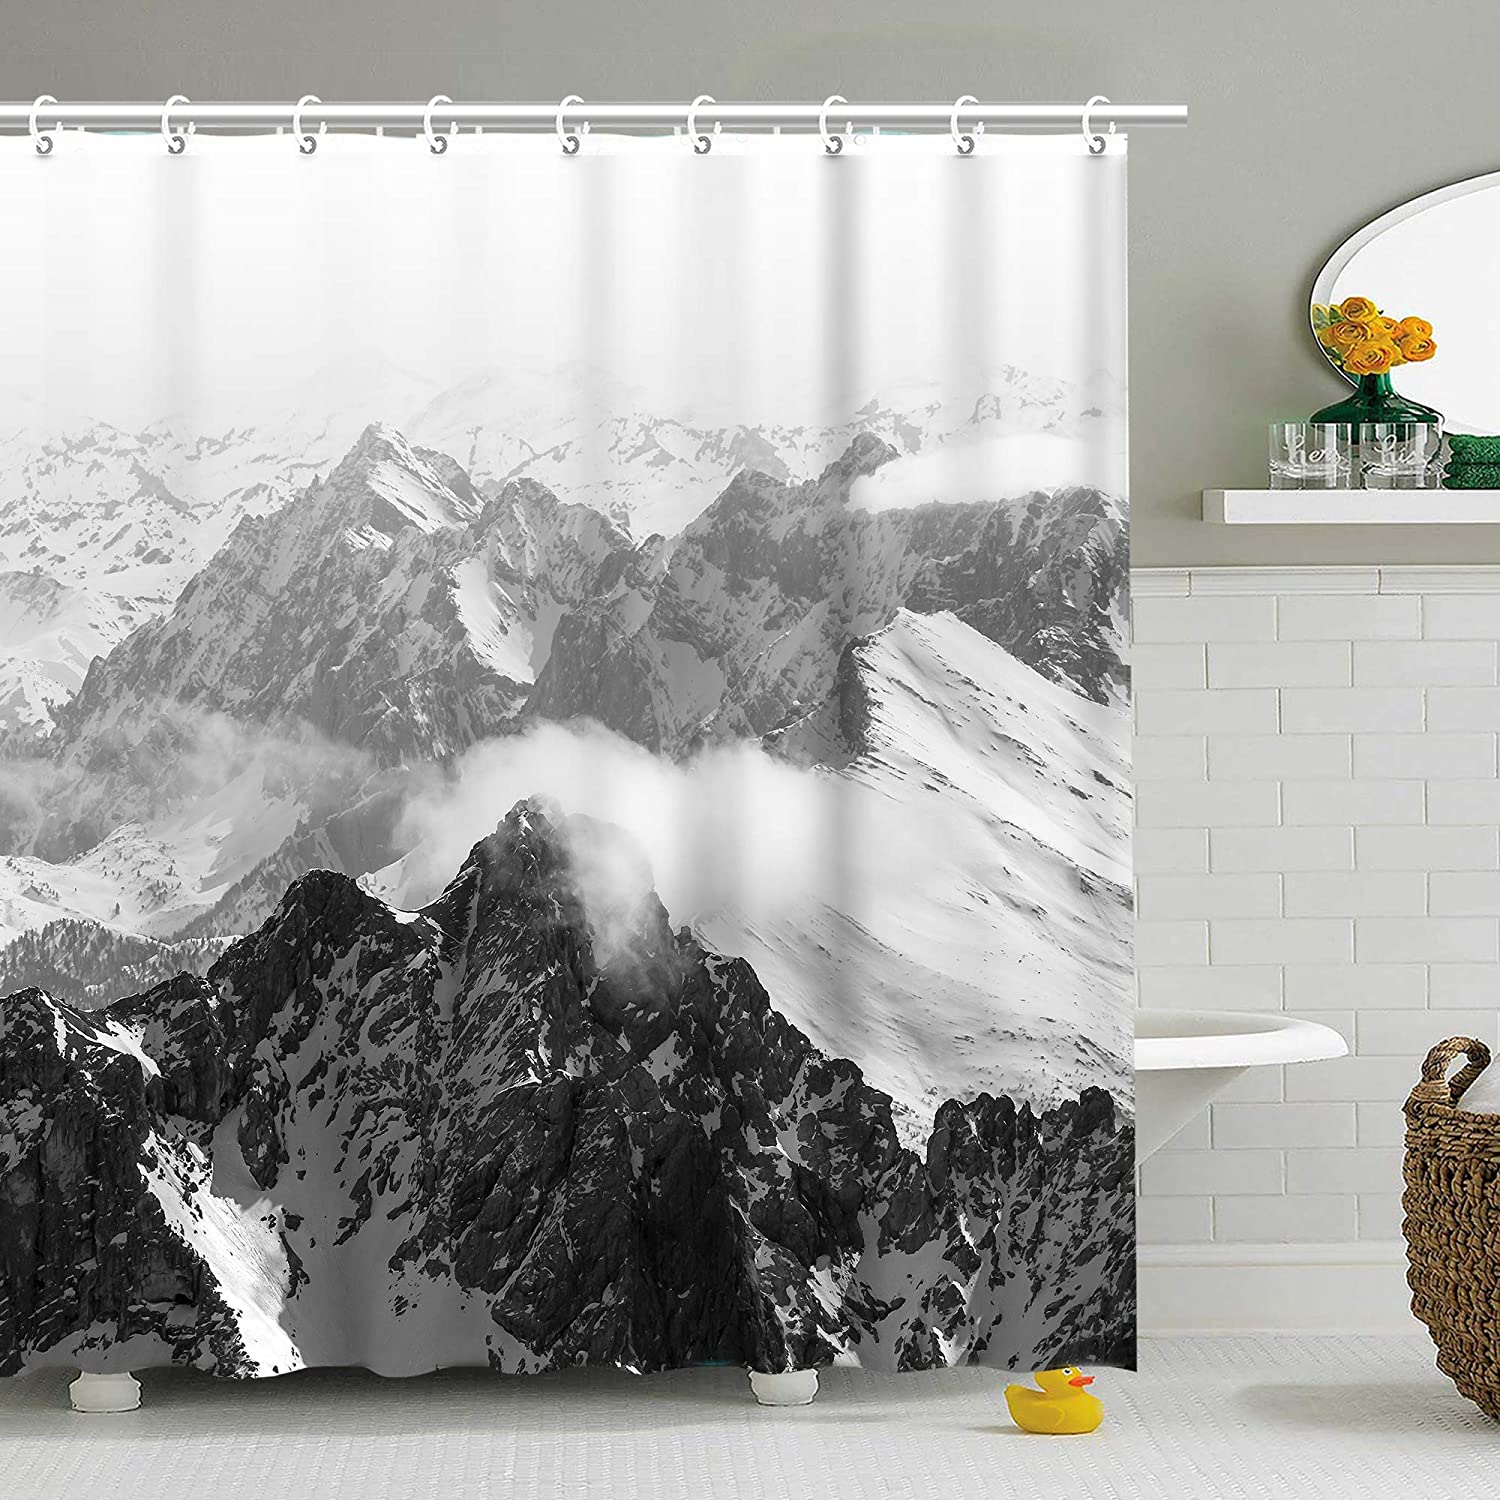 Stacy Fay Shower Curtain Moody Snow Capped Mountain Peaks Nature Photography Home Decor Cliff Outdoor Idyllic Photo Art, Fabric Bathroom Decor Set with Hooks,72 X 72 Inch